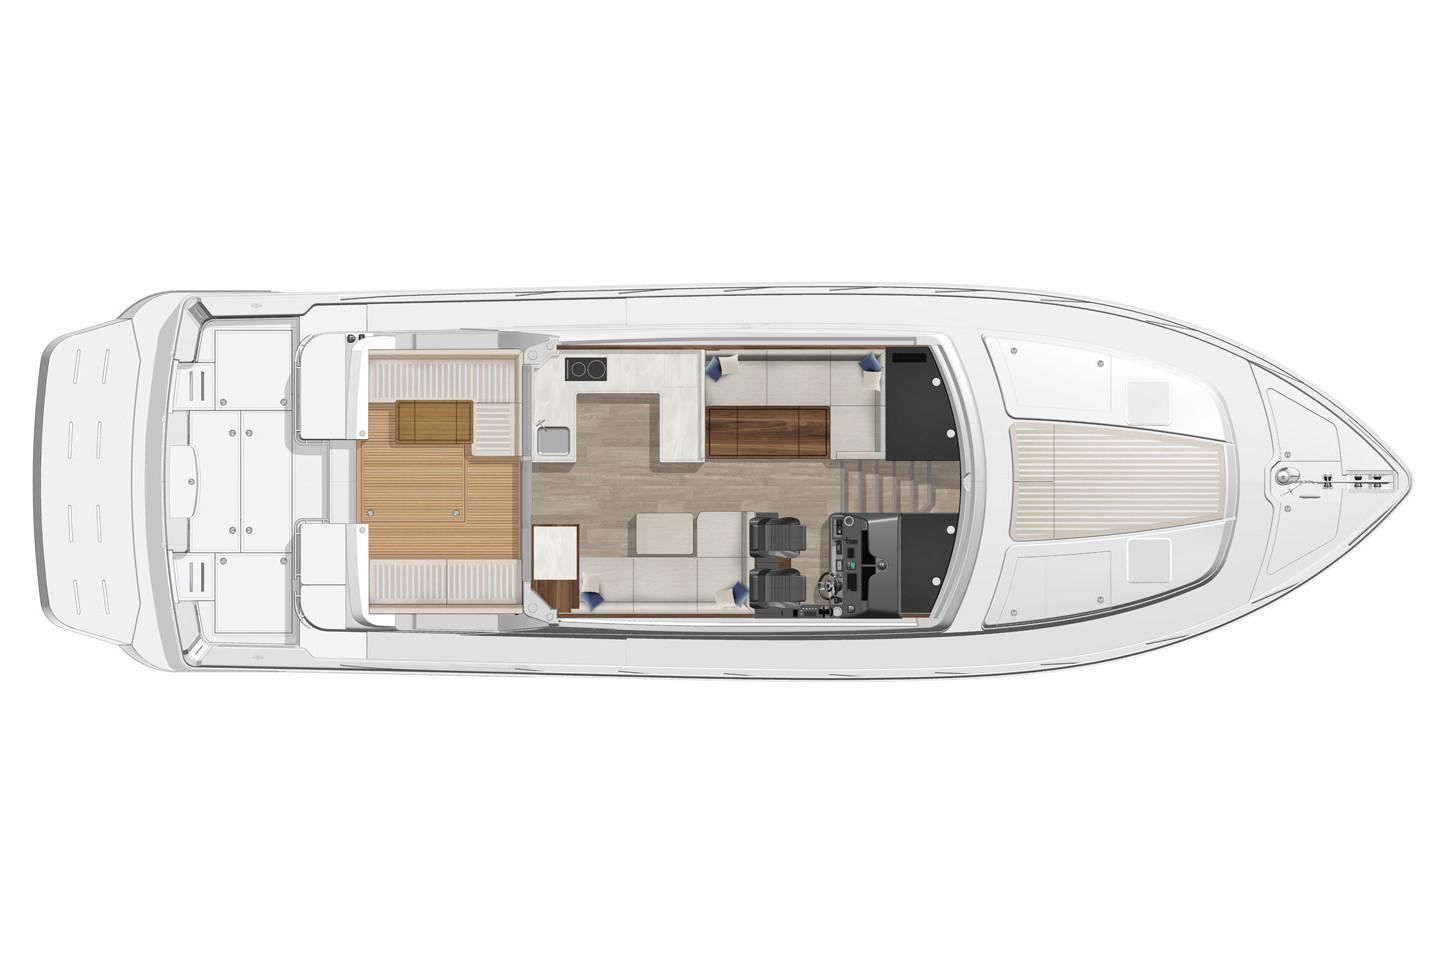 2021 Riviera 505 SUV #R125 inventory image at Sun Country Coastal in Newport Beach